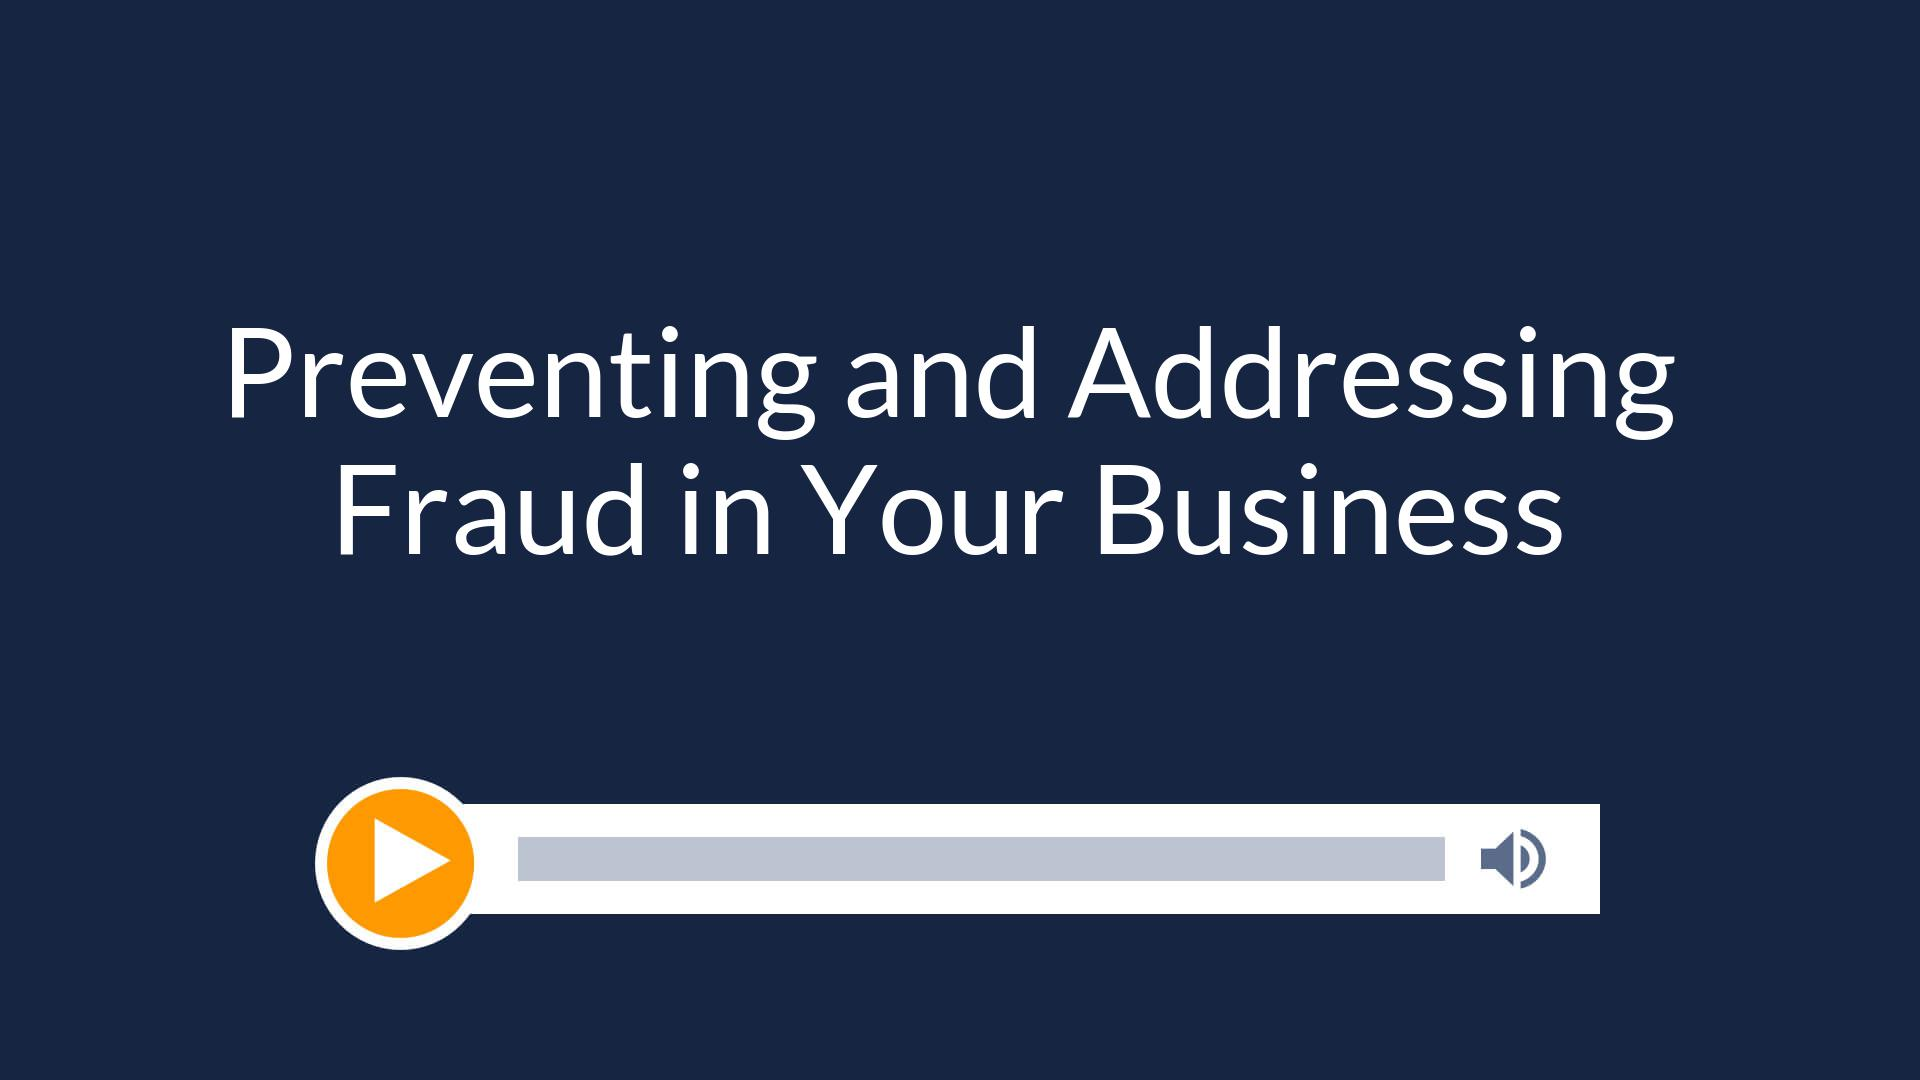 Preventing and Addressing Fraud in Your Business